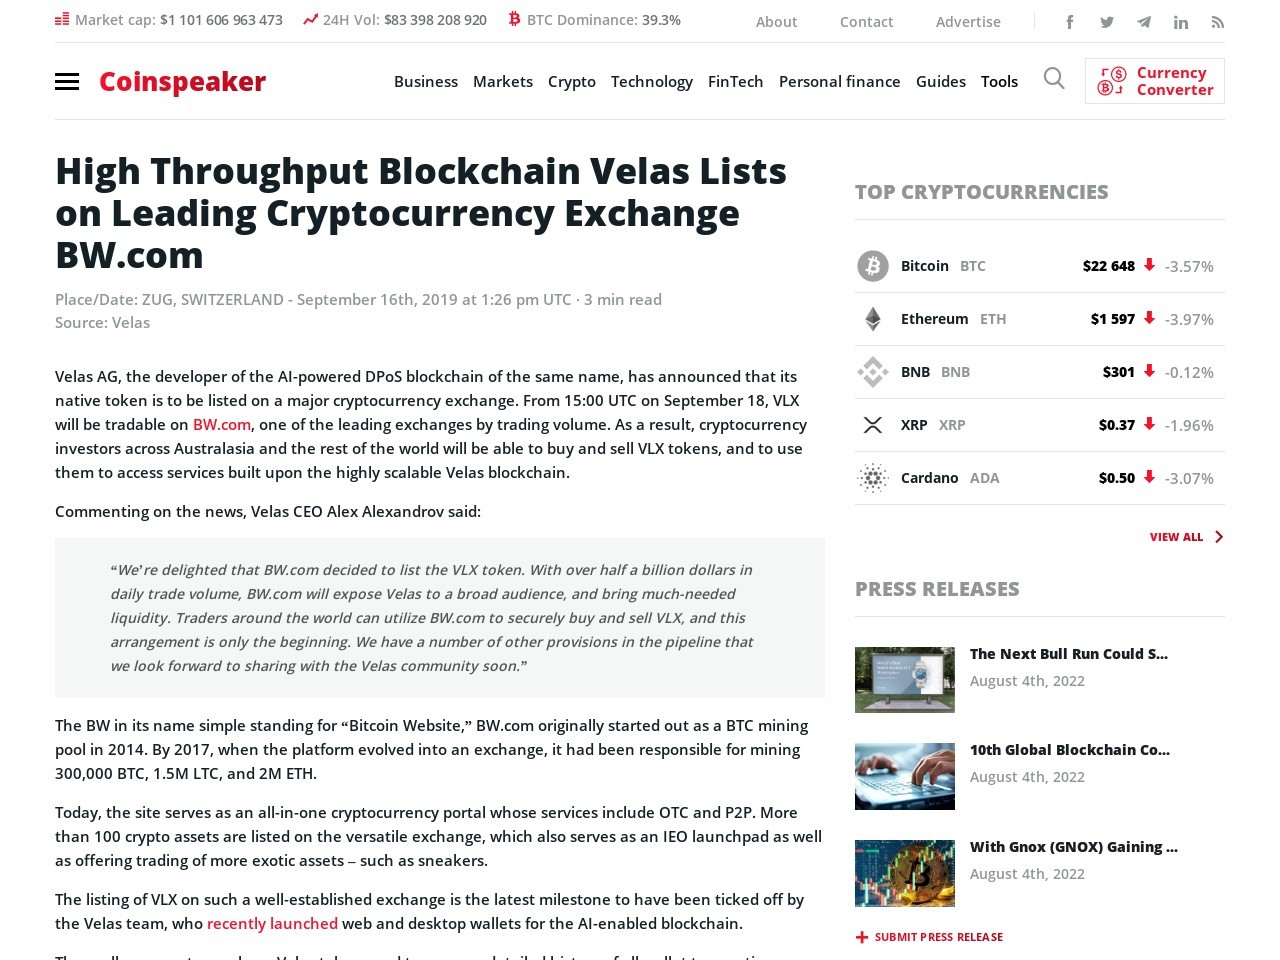 High Throughput Blockchain Velas Lists on Leading Cryptocurrency Exchange BW.com